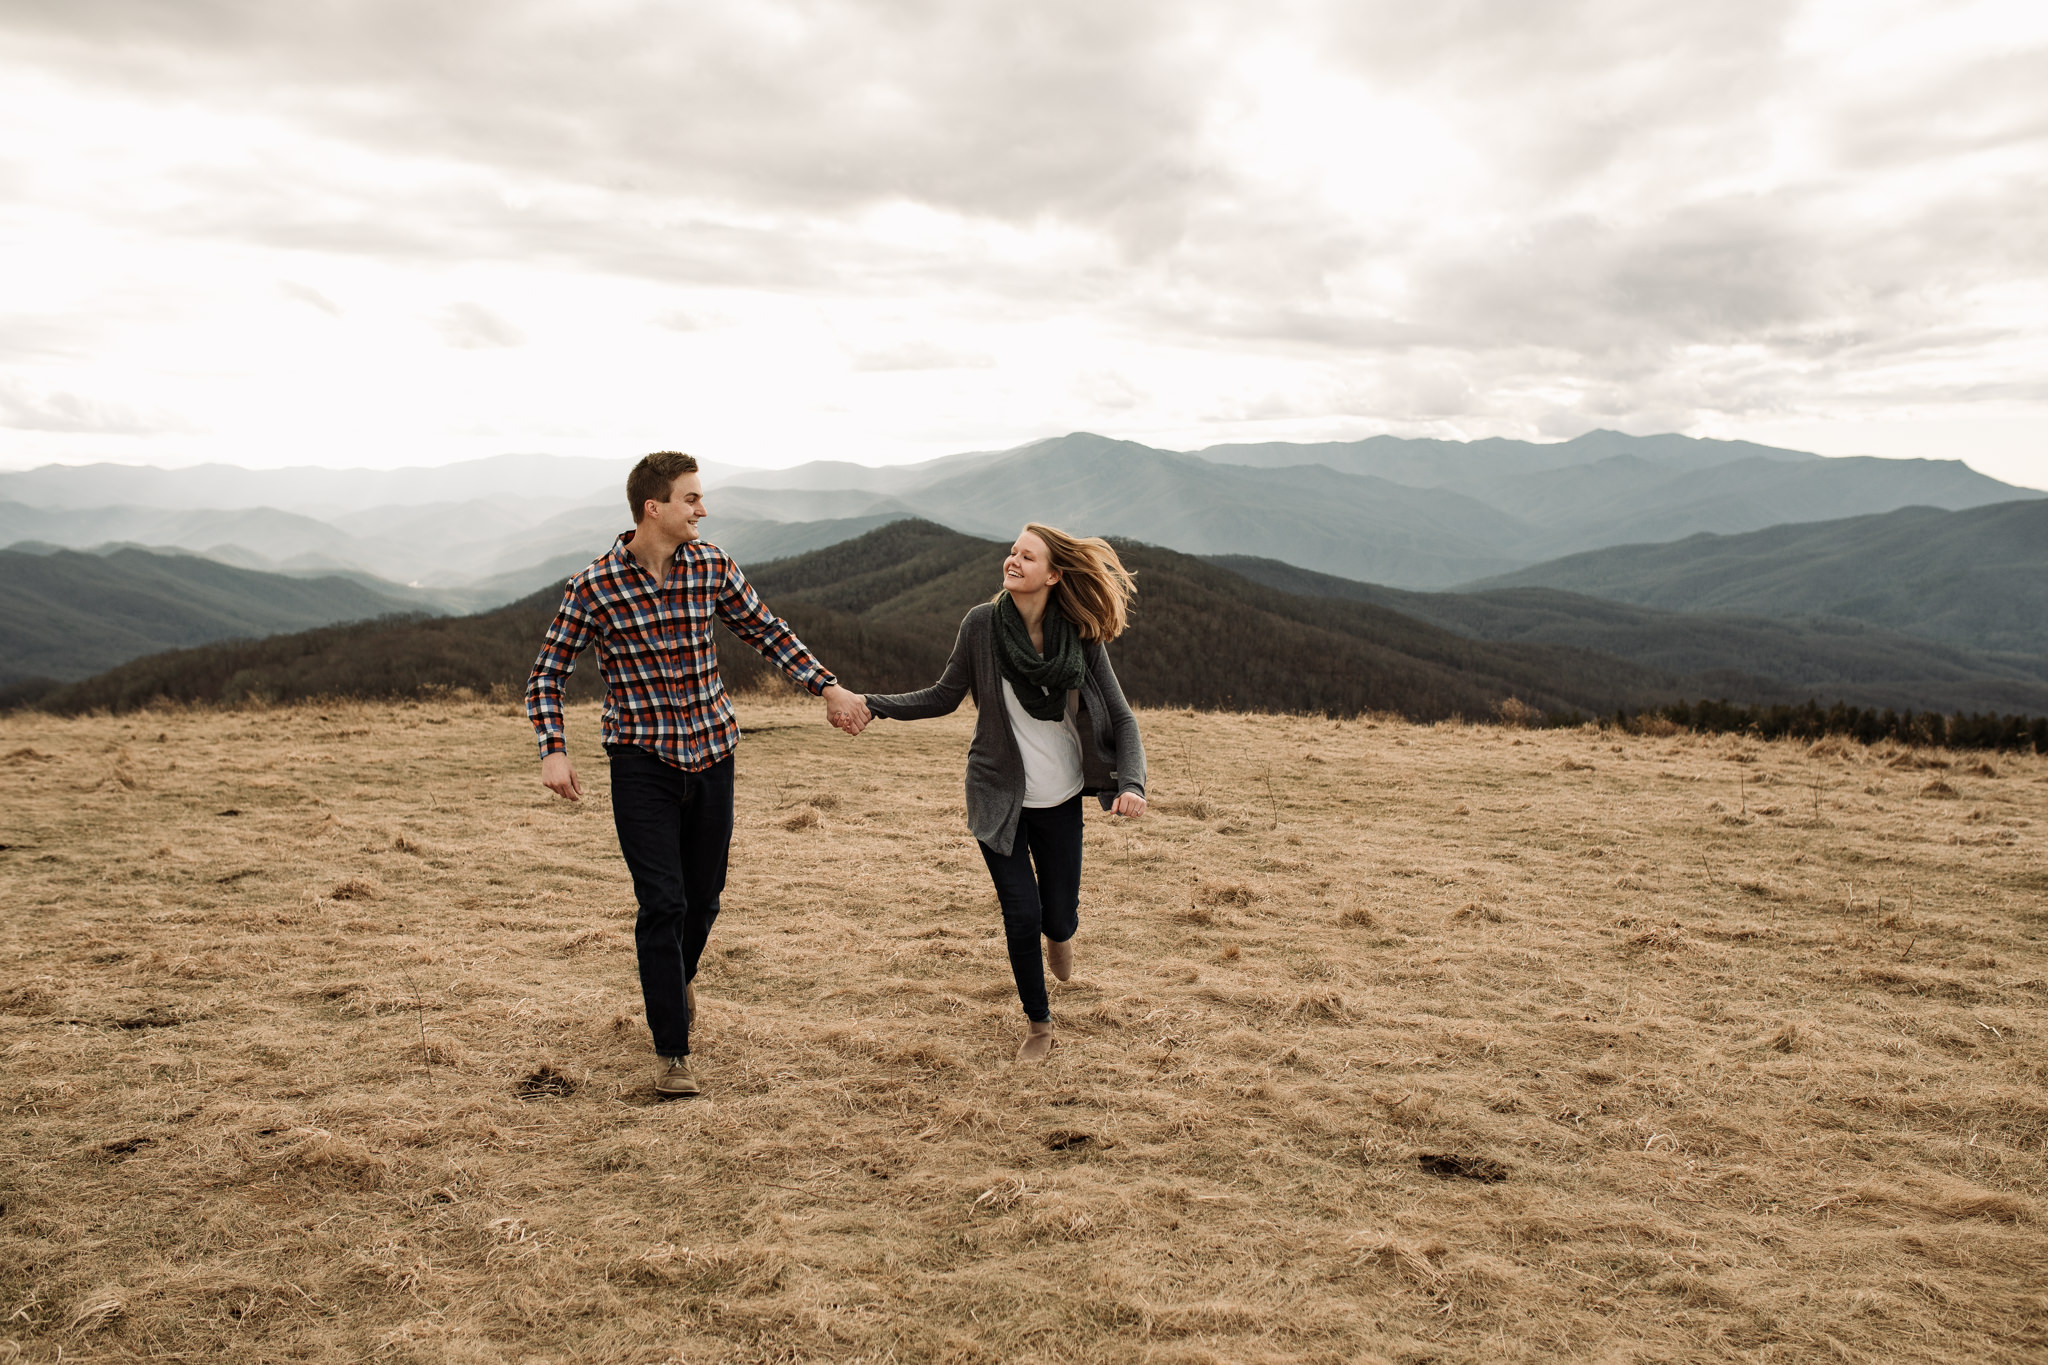 max-patch-engagement-pictures-cassie-cook-photography-asheville-wedding-photographer-3.jpg